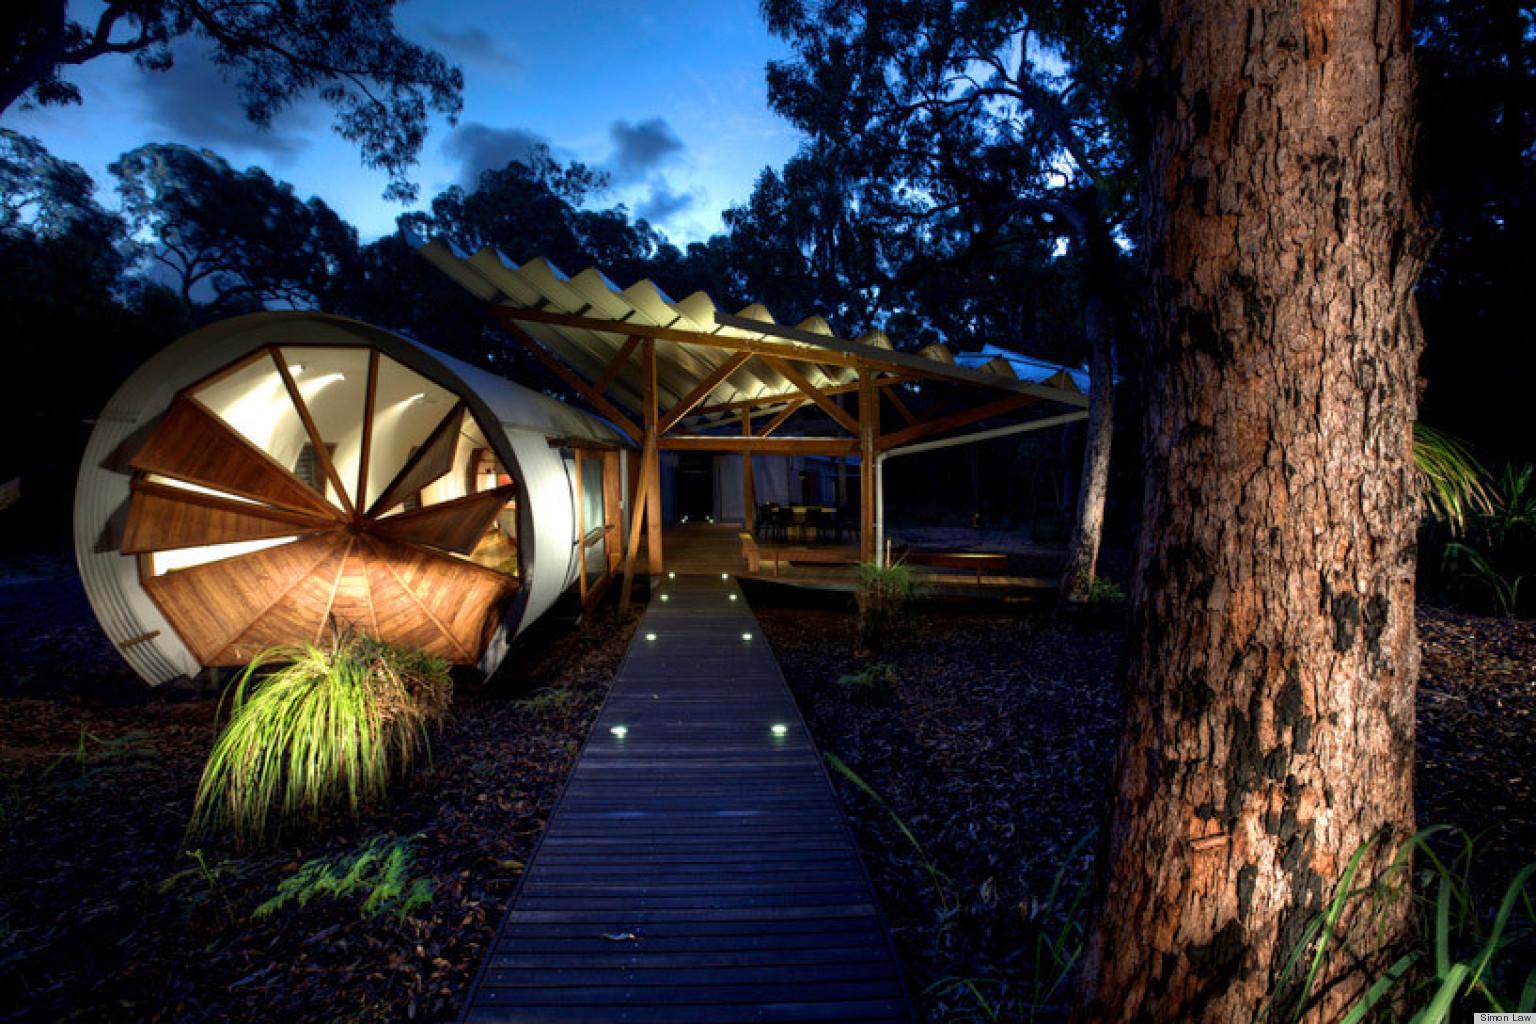 Sustainable house design queensland - Marian And Derek Drew S Australian Beach House Is Inspired By Their Childhood Memories Photos Video Huffpost